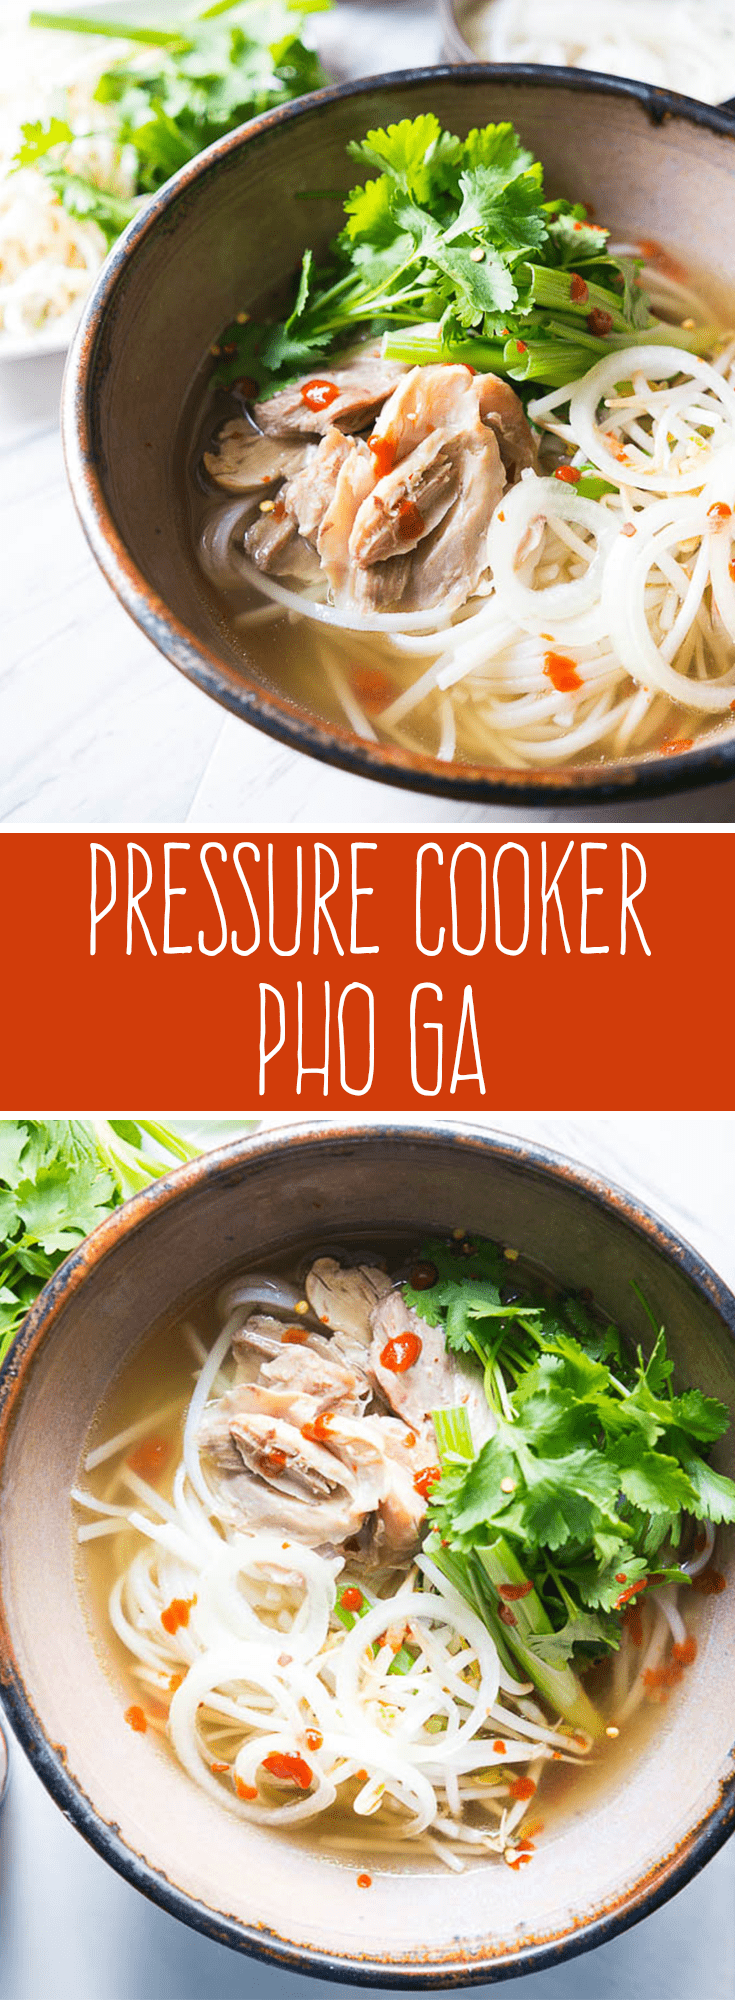 Pressure Cooker Pho Ga photo collage